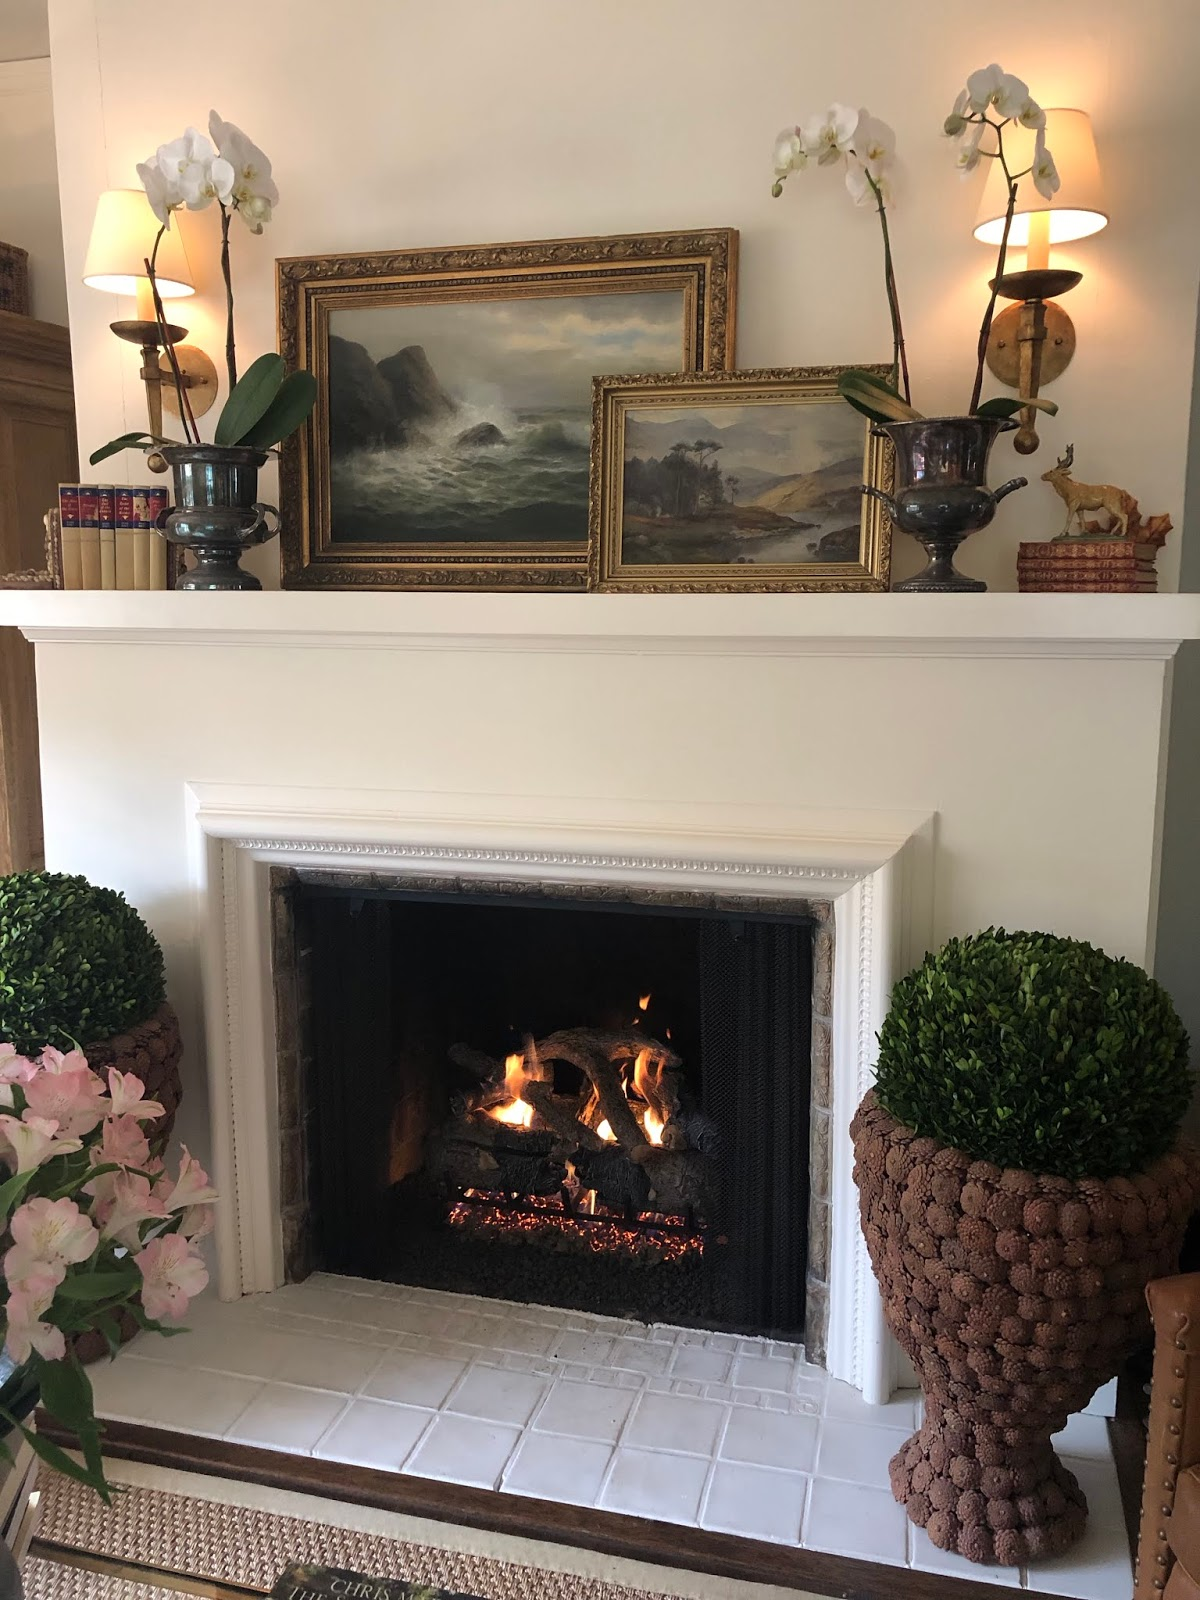 Convert Fireplace To Gas Burning Vignette Design Converting From Wood To Gas Fireplace